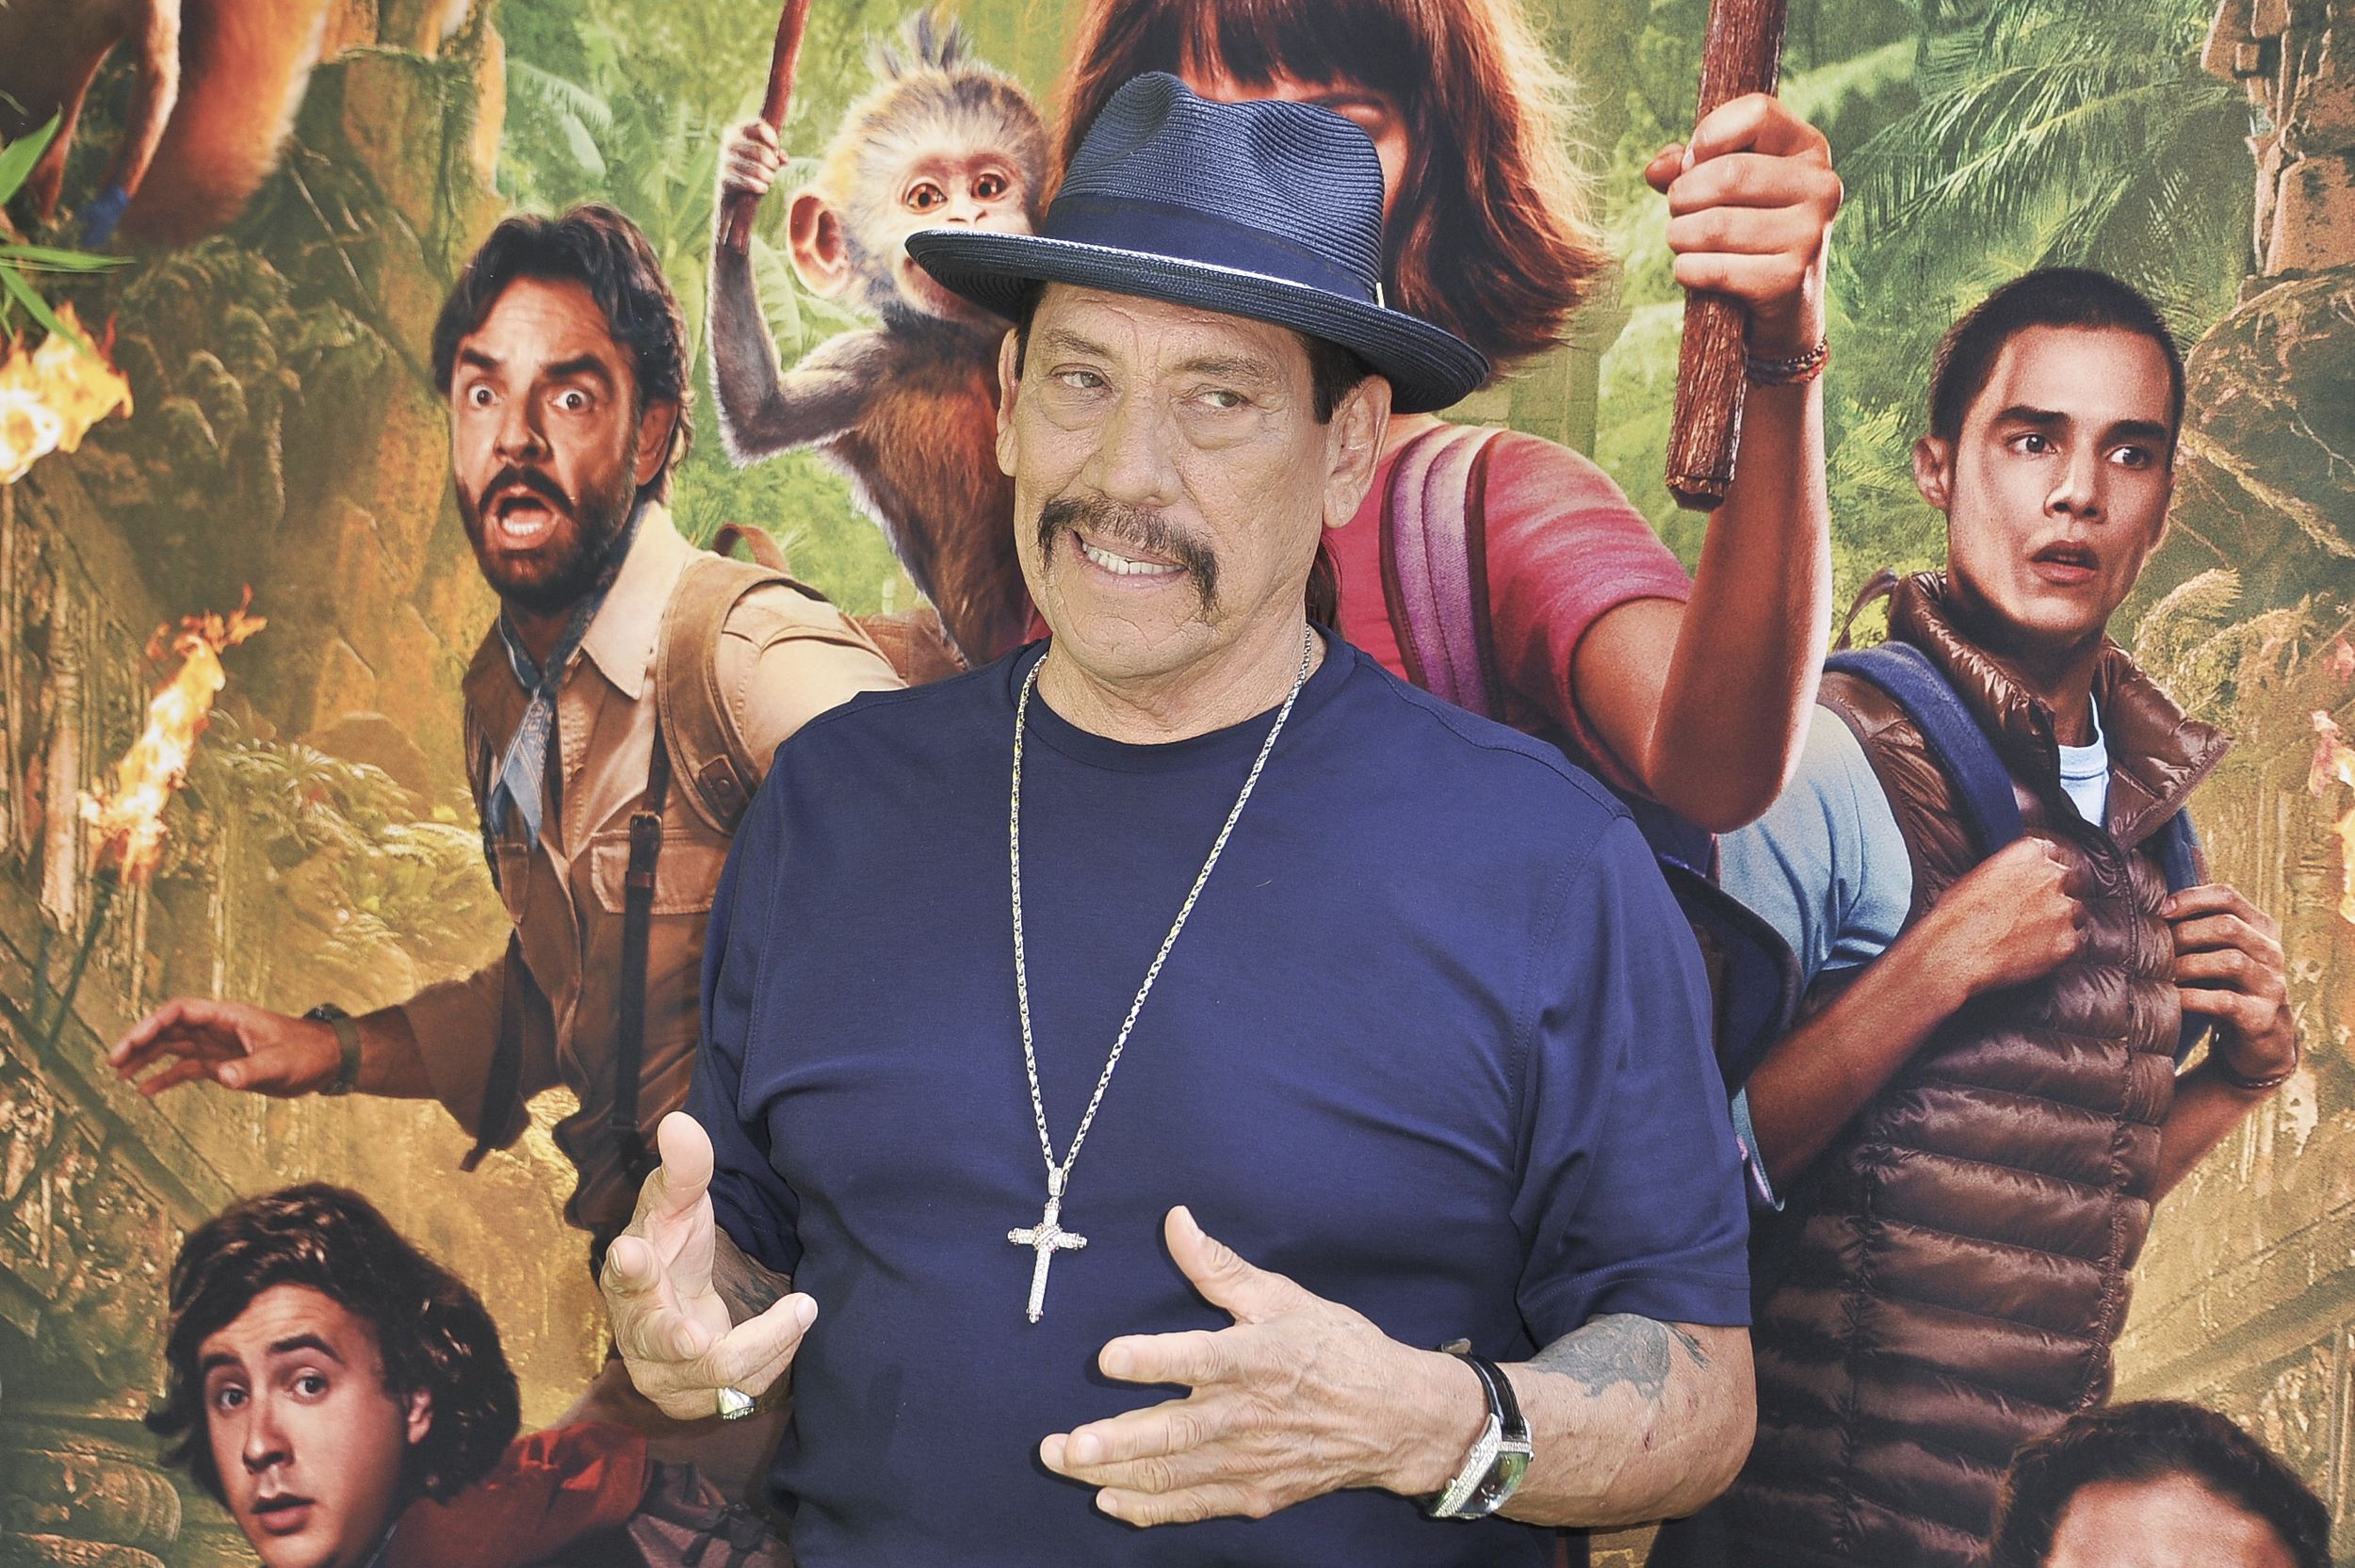 Actor Danny Trejo rescues child trapped in overturned car